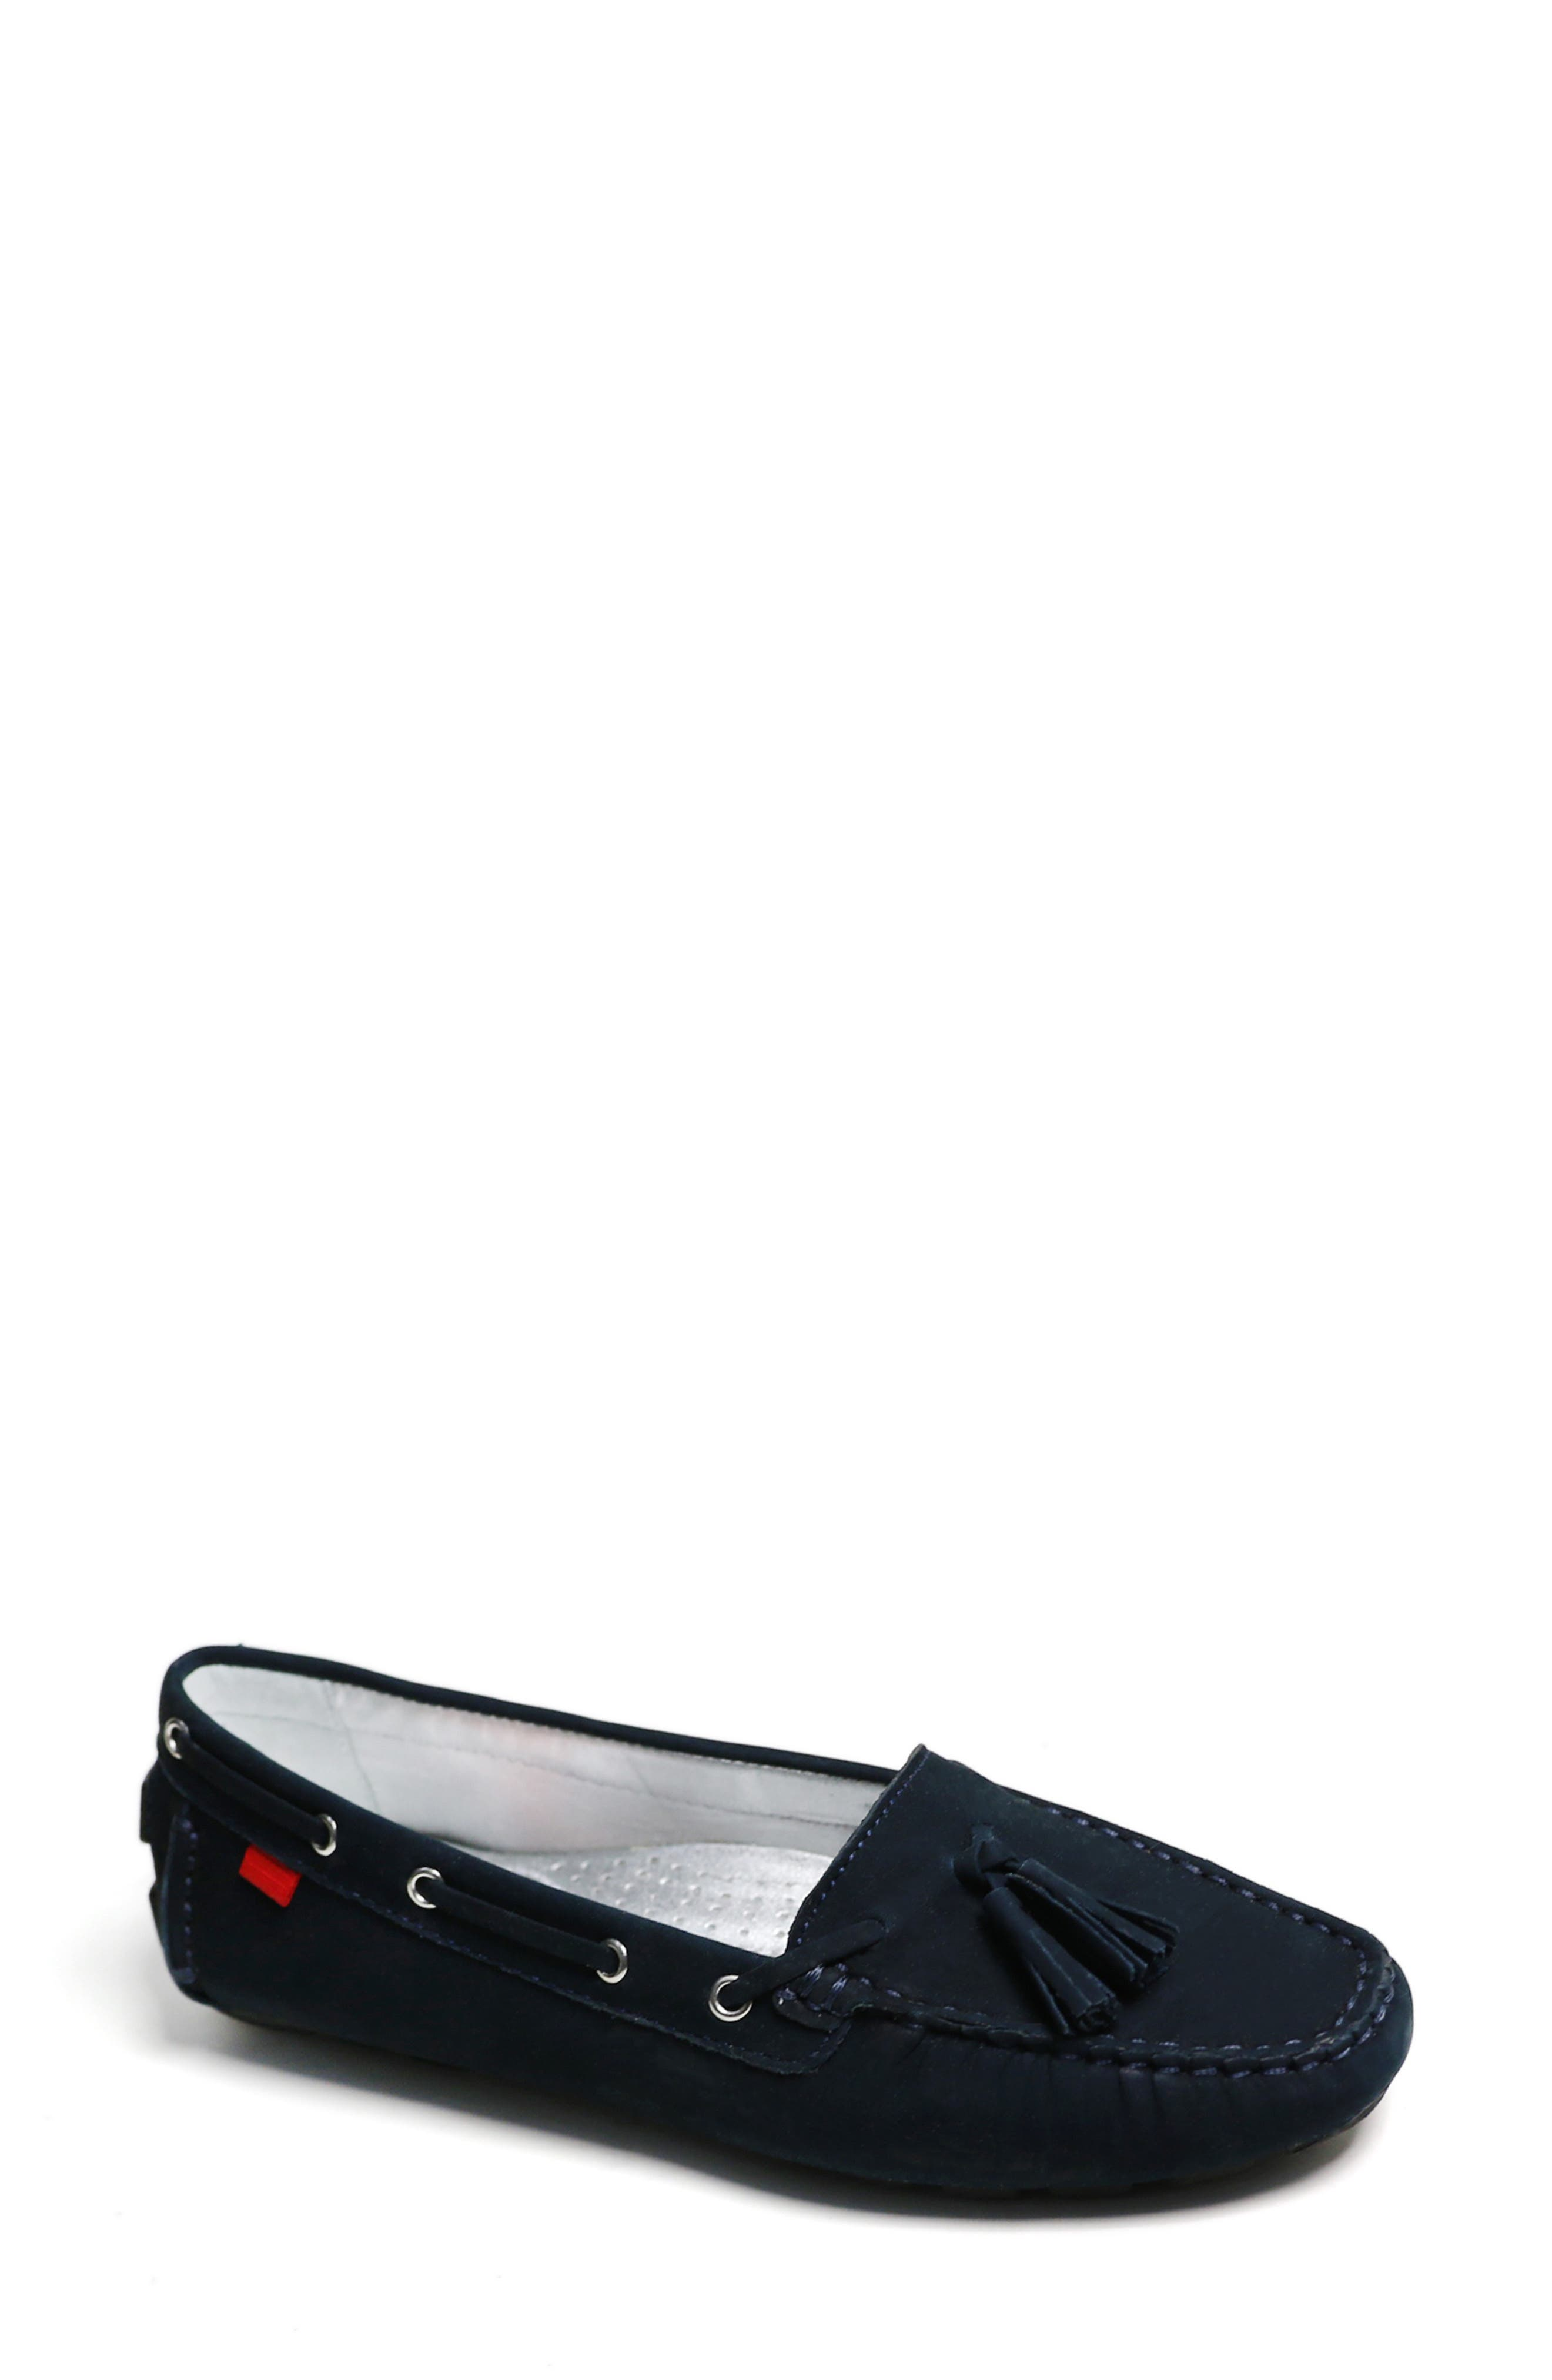 An artisan-crafted driving loafer with lacing and tassels boasts a gel-heel insert, a padded arch-supportive footbed and a flexible sole for comfort. Style Name: Marc Joseph New York Prospect Park Tassel Loafer (Women). Style Number: 6108267. Available in stores.